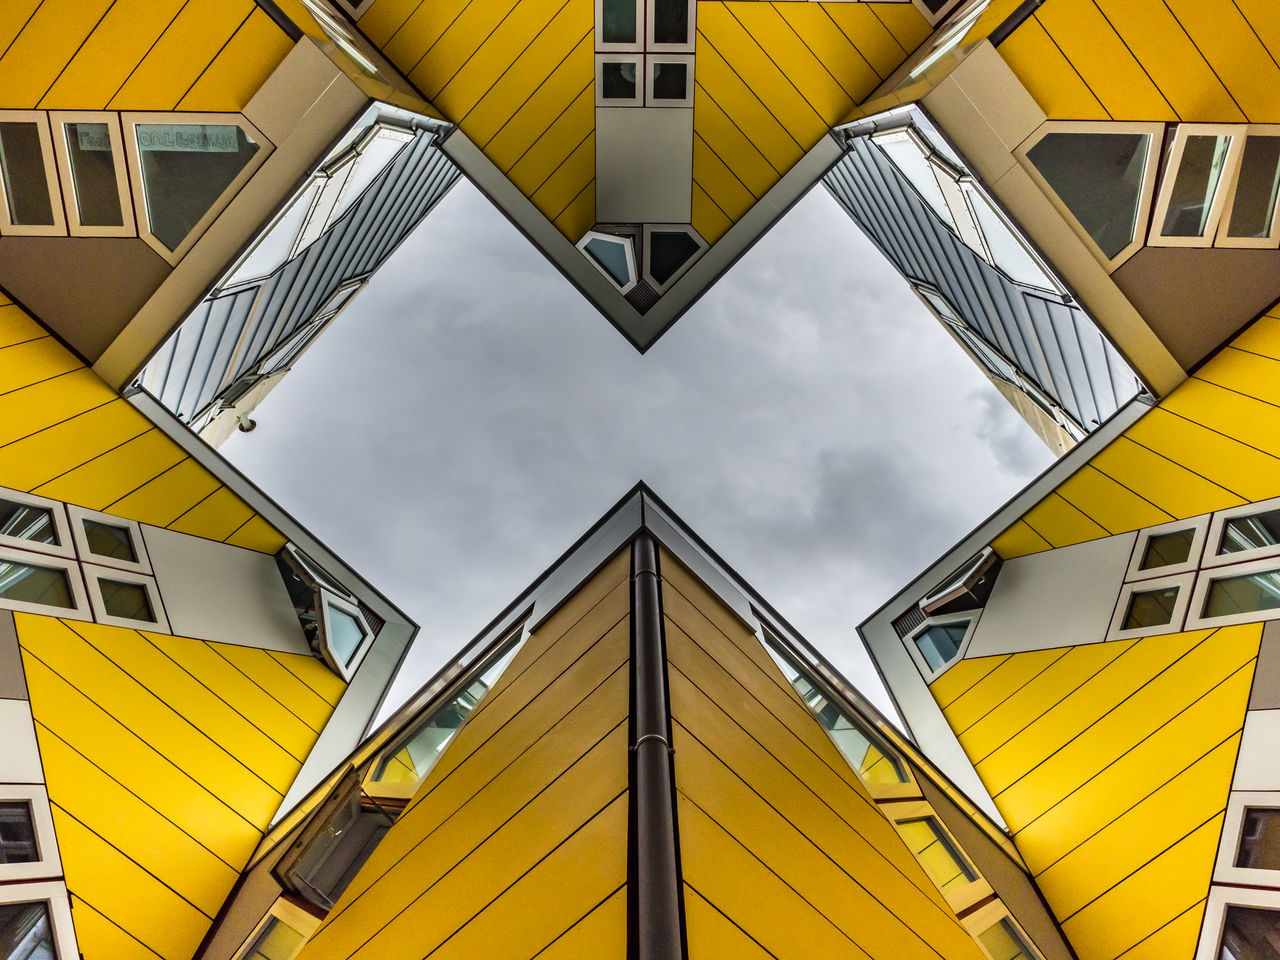 Another angle of Rotterdam's famous Cube houses, designed by Piet Blom in 1978. Architecture Blaak Blaakse Bos Building Exterior Built Structure Cube Cube Houses Day Famous Place Holland Houses Living Low Angle View Mathematics No People Outdoors Piet Blom Rotterdam Sky The Architect - 2017 EyeEm Awards The Netherlands Yellow